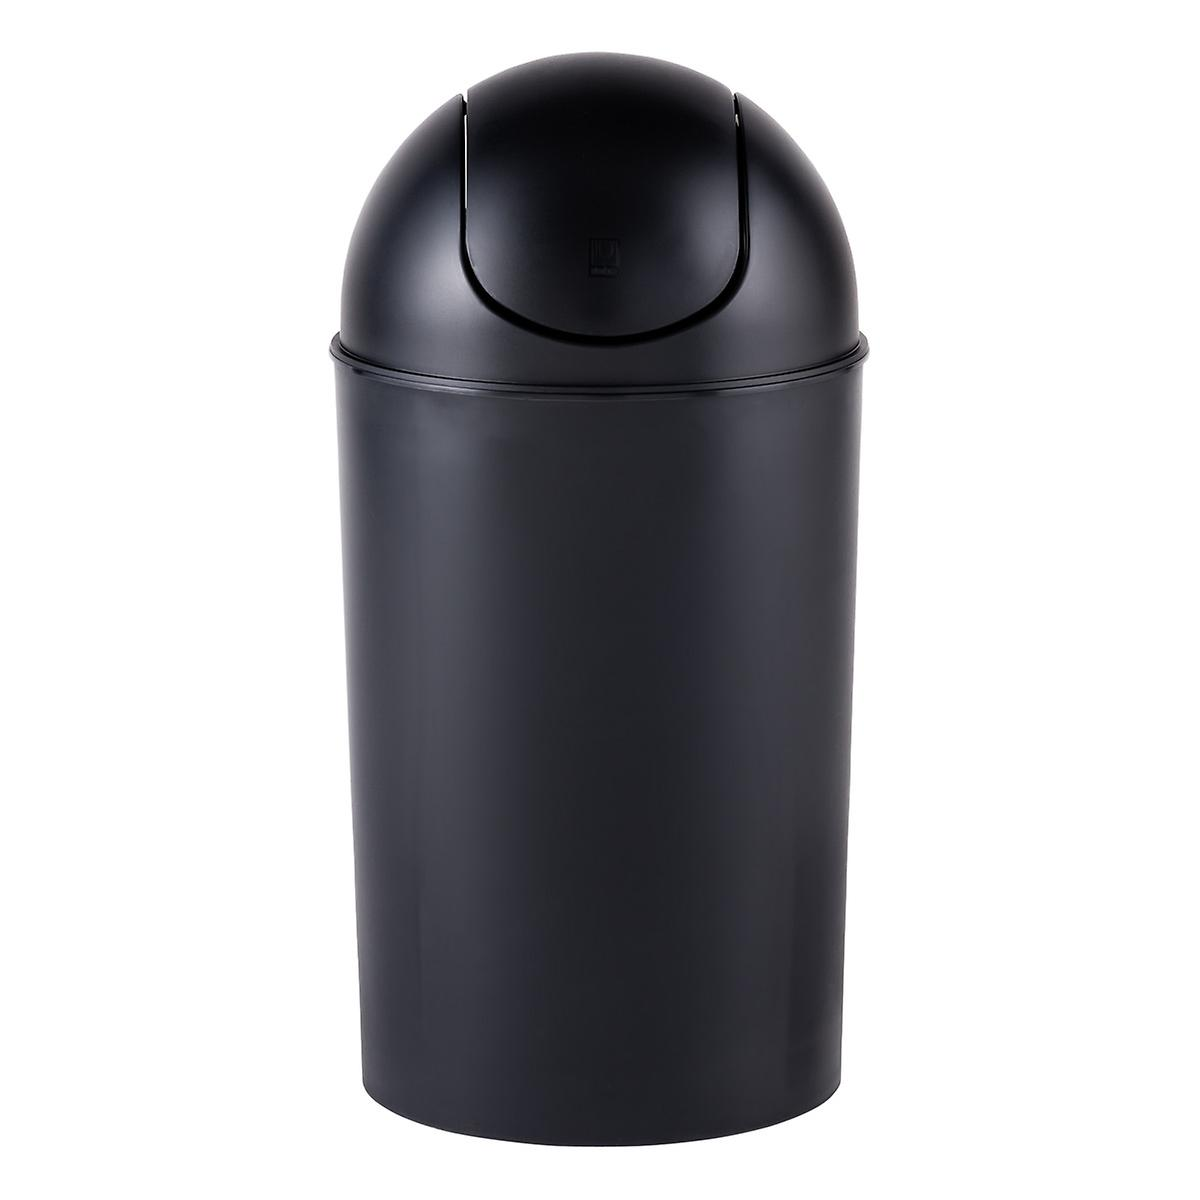 Garbage Can with Swing Lid